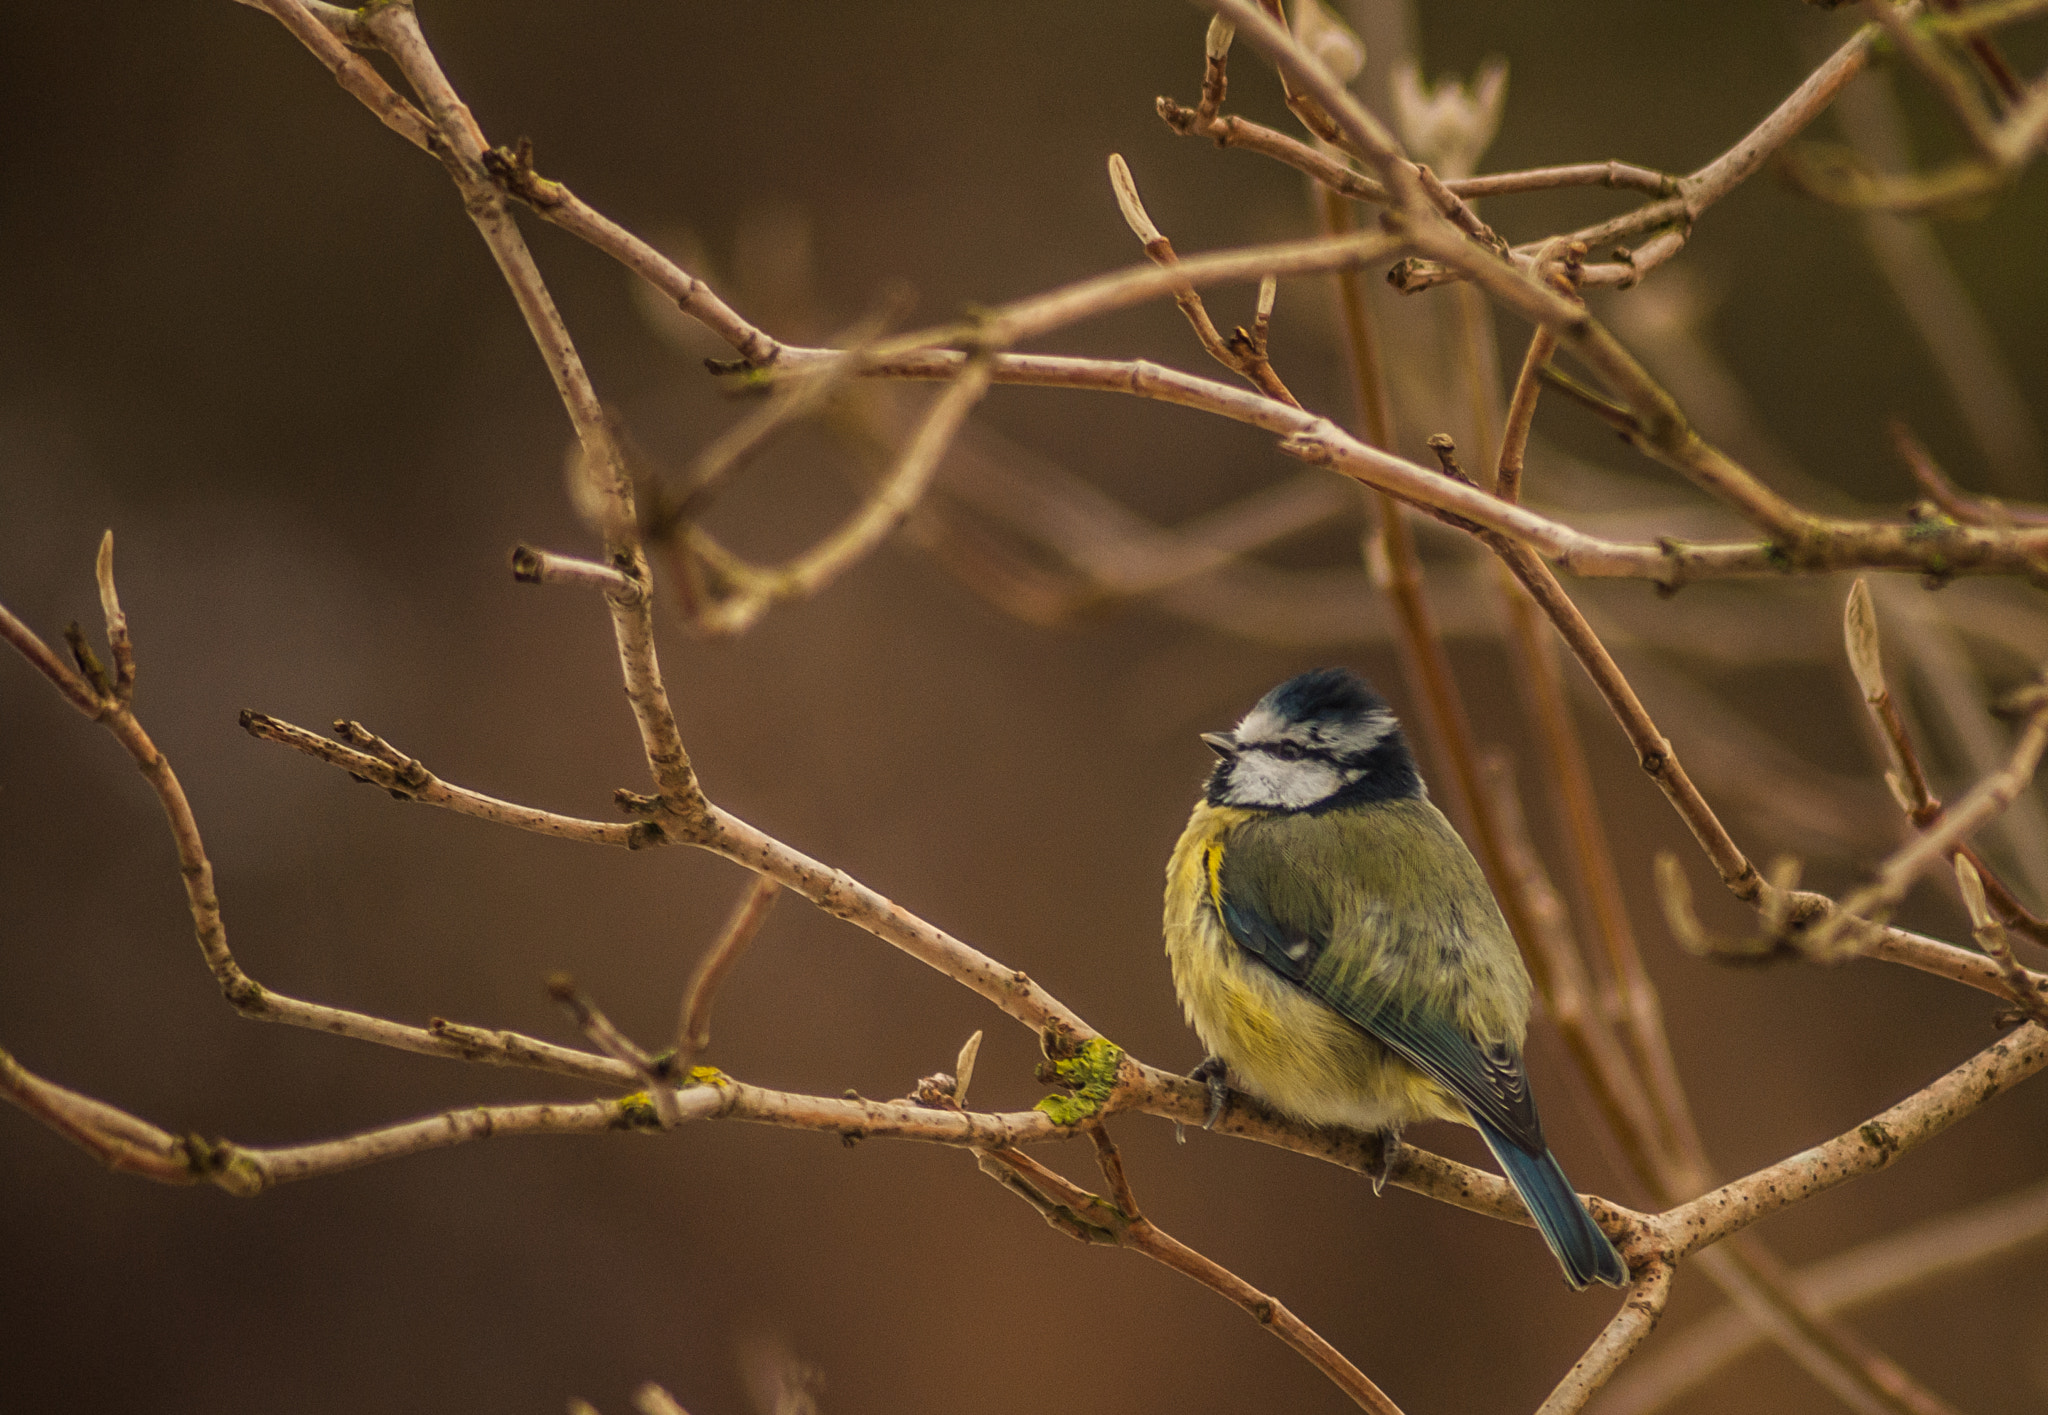 Photograph Lil Blue Tit by Josh Spacagna on 500px